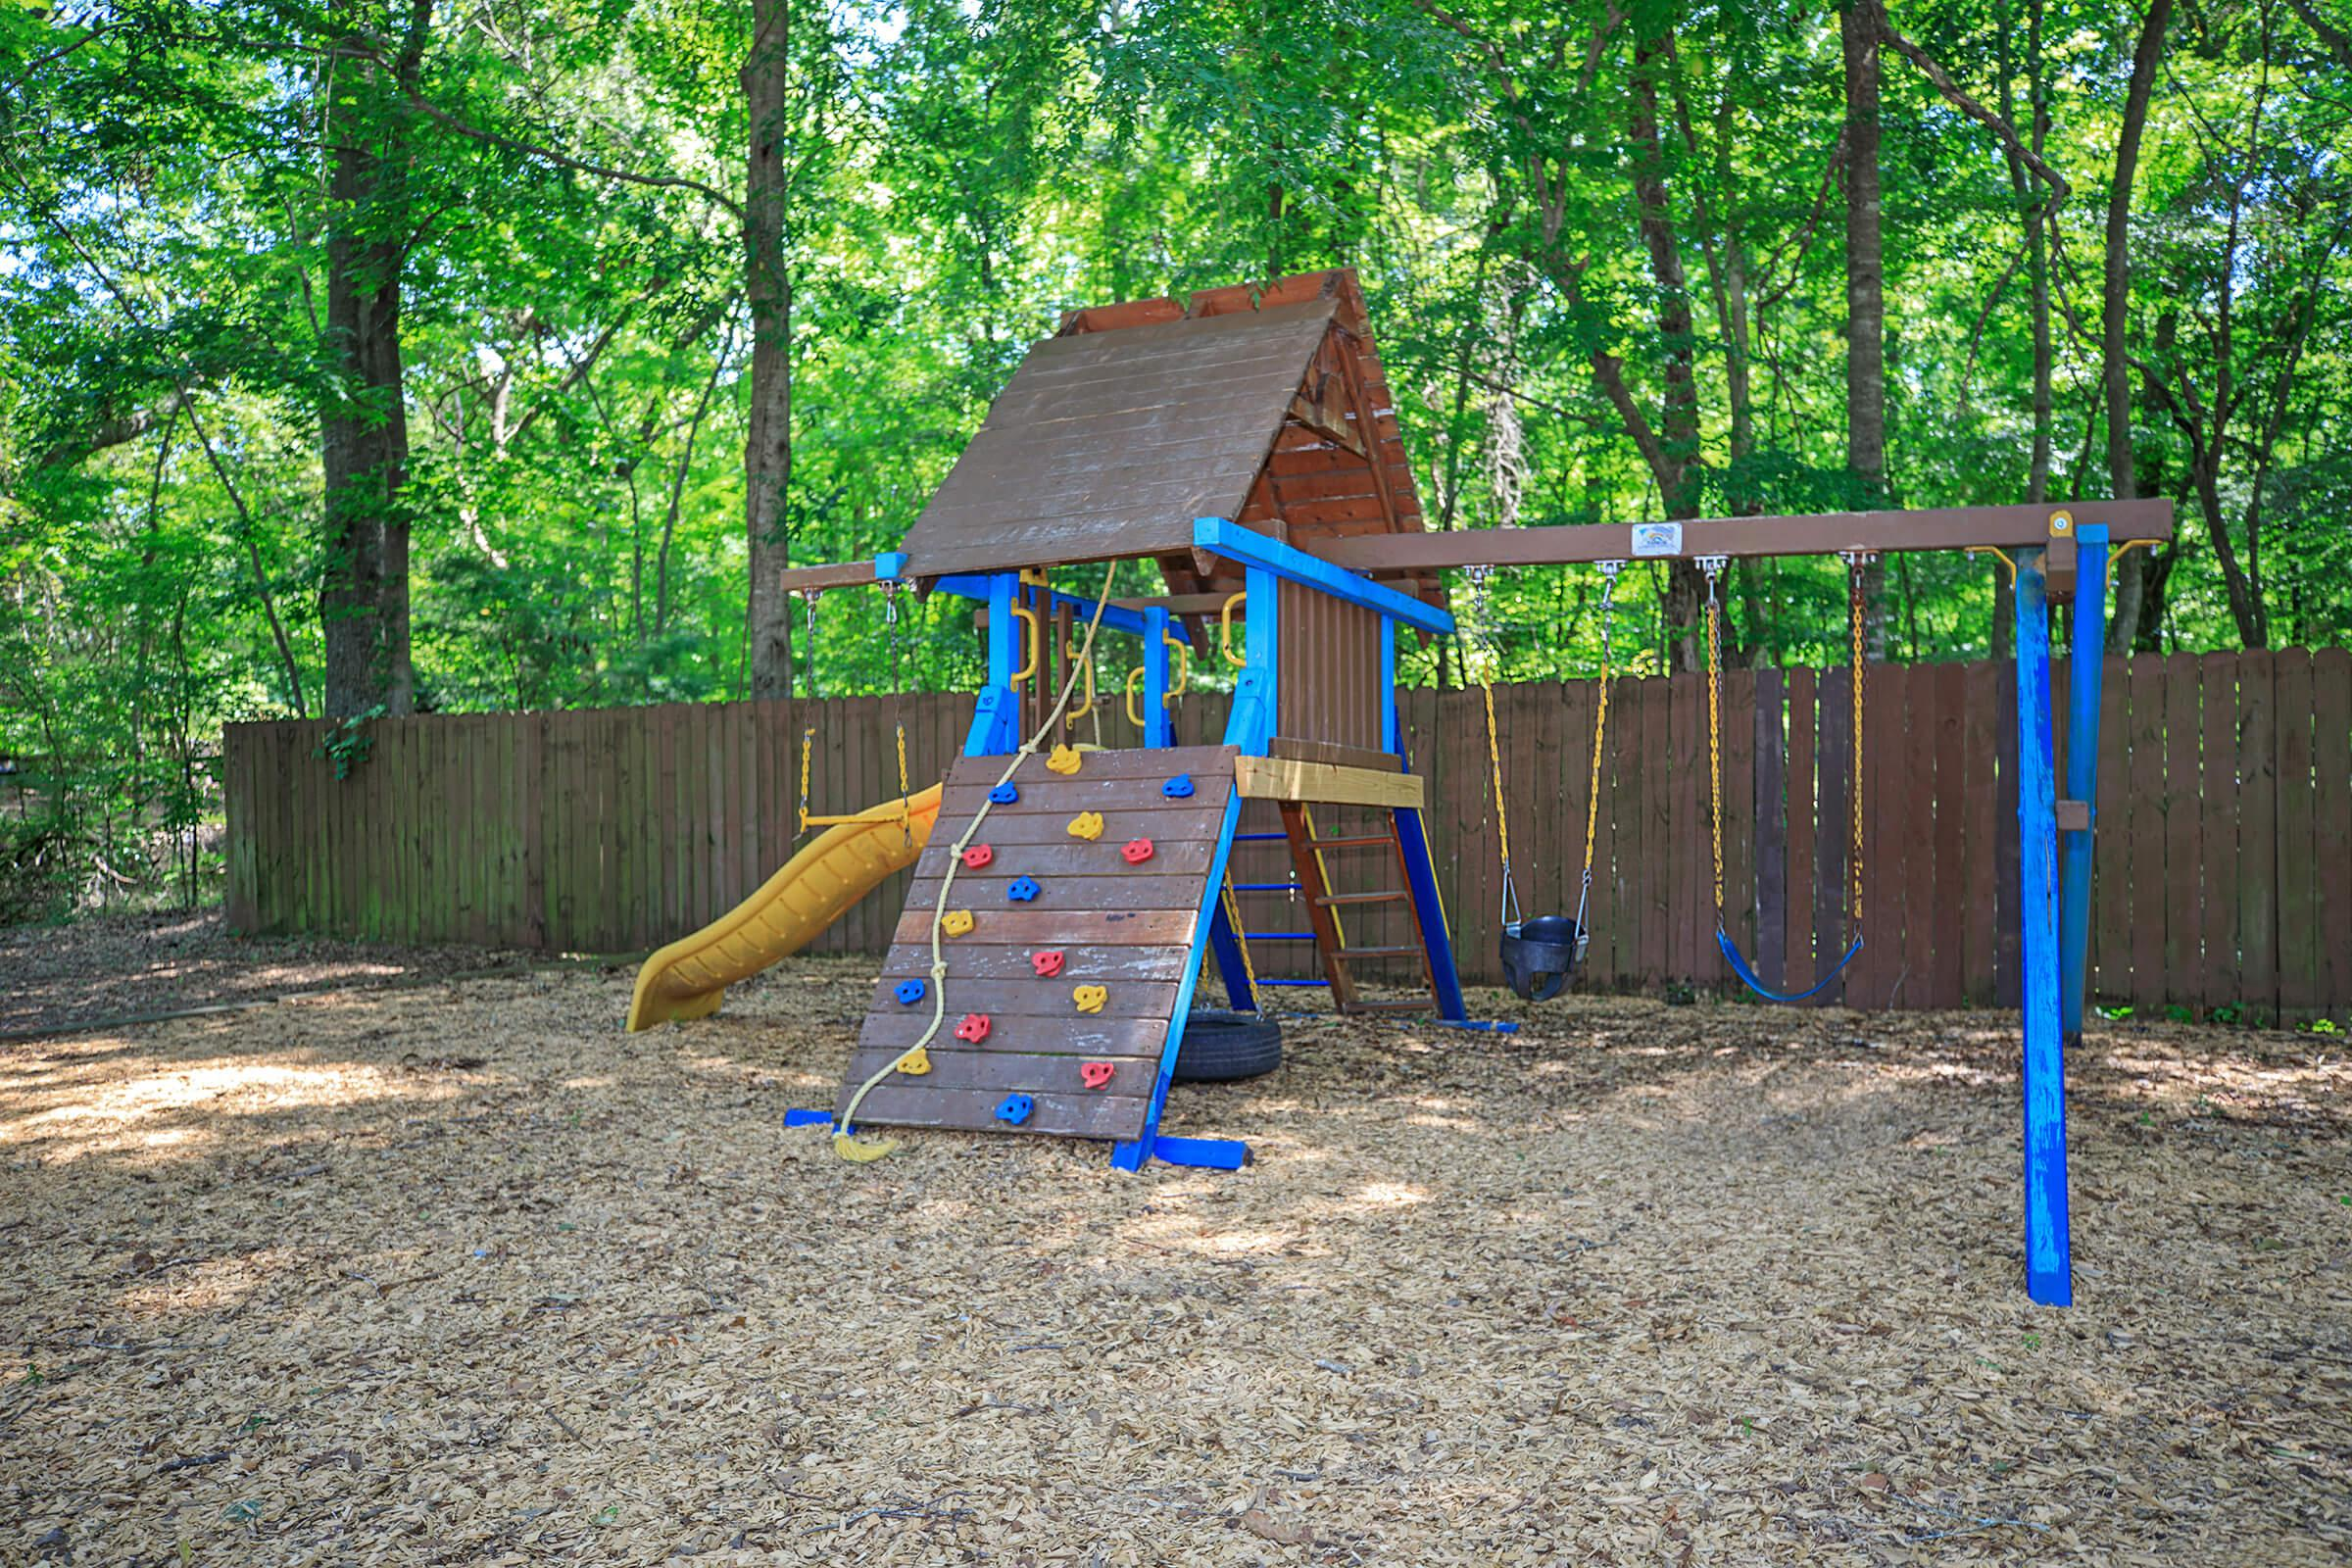 a playground with trees in the background